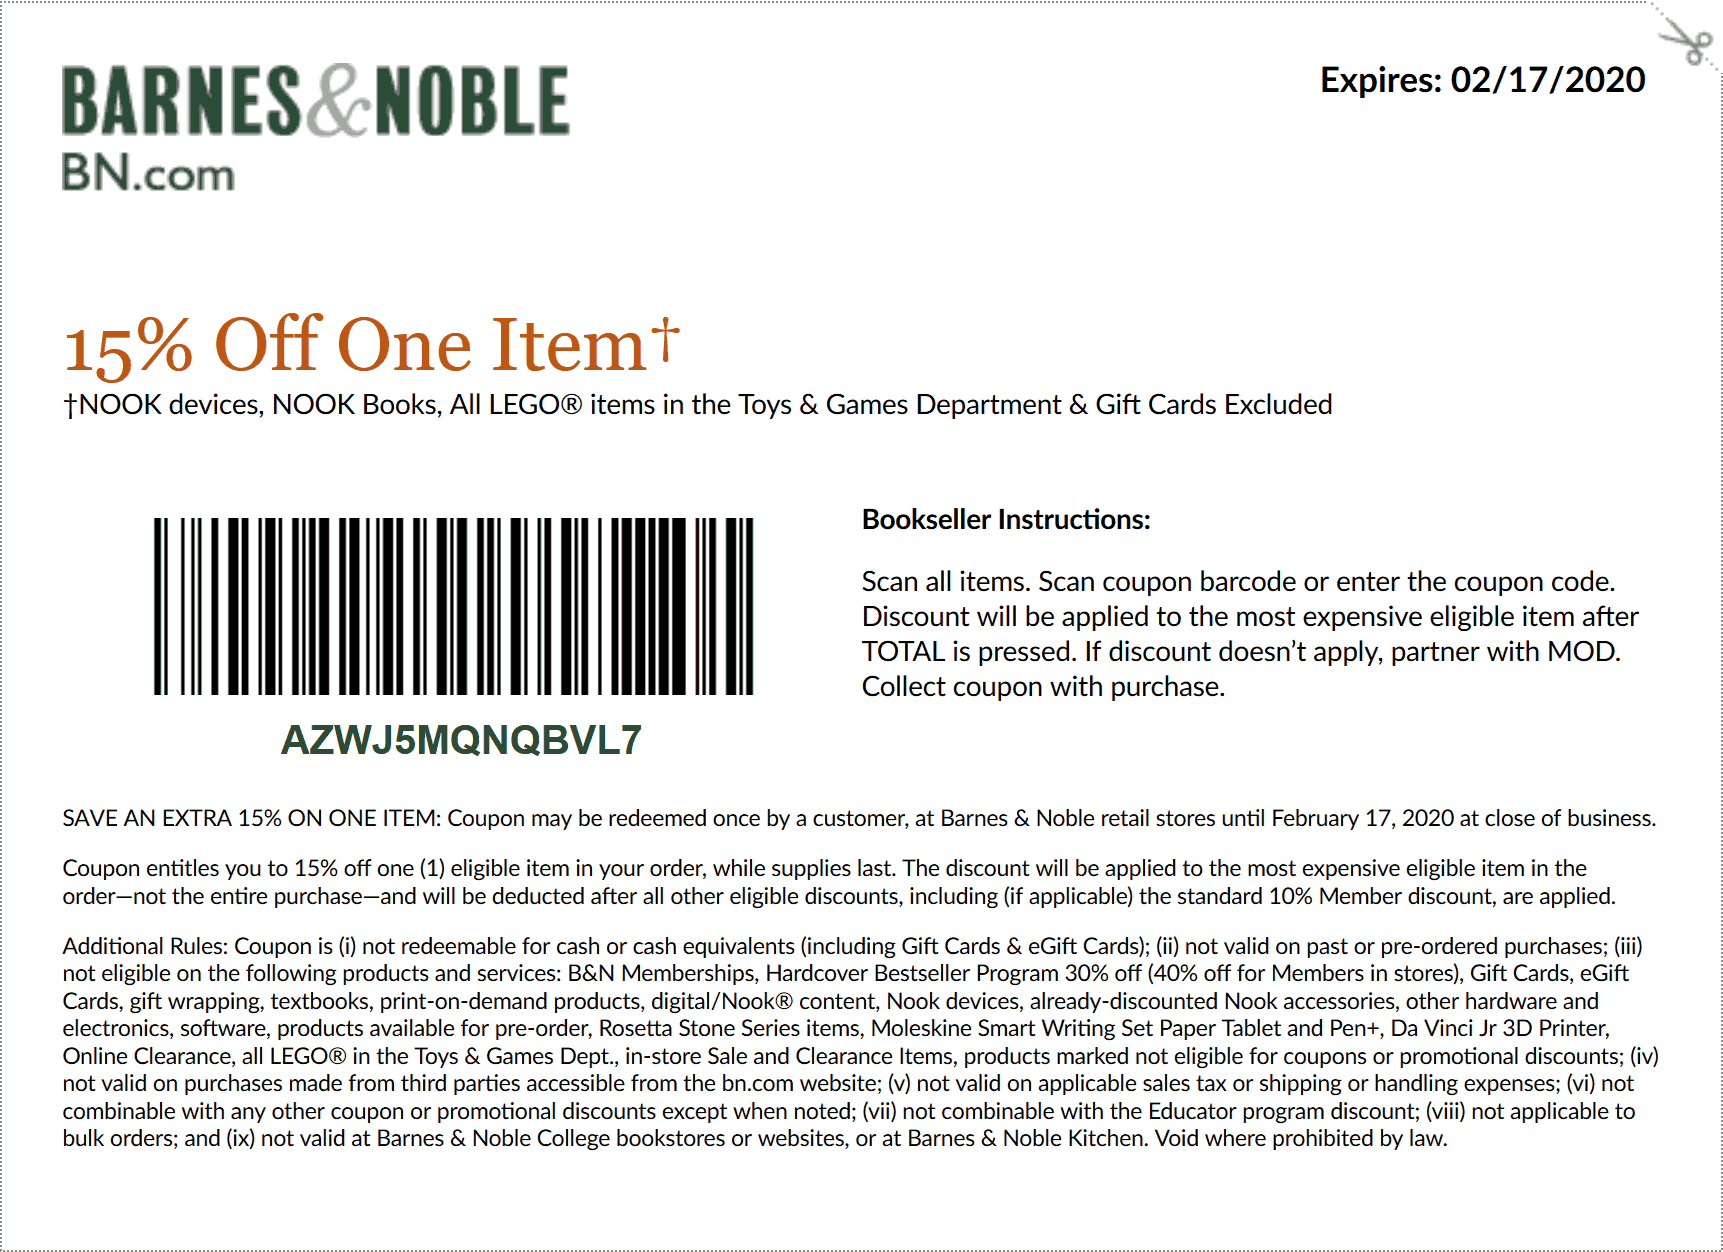 Barnes & Noble coupons & promo code for [February 2020]